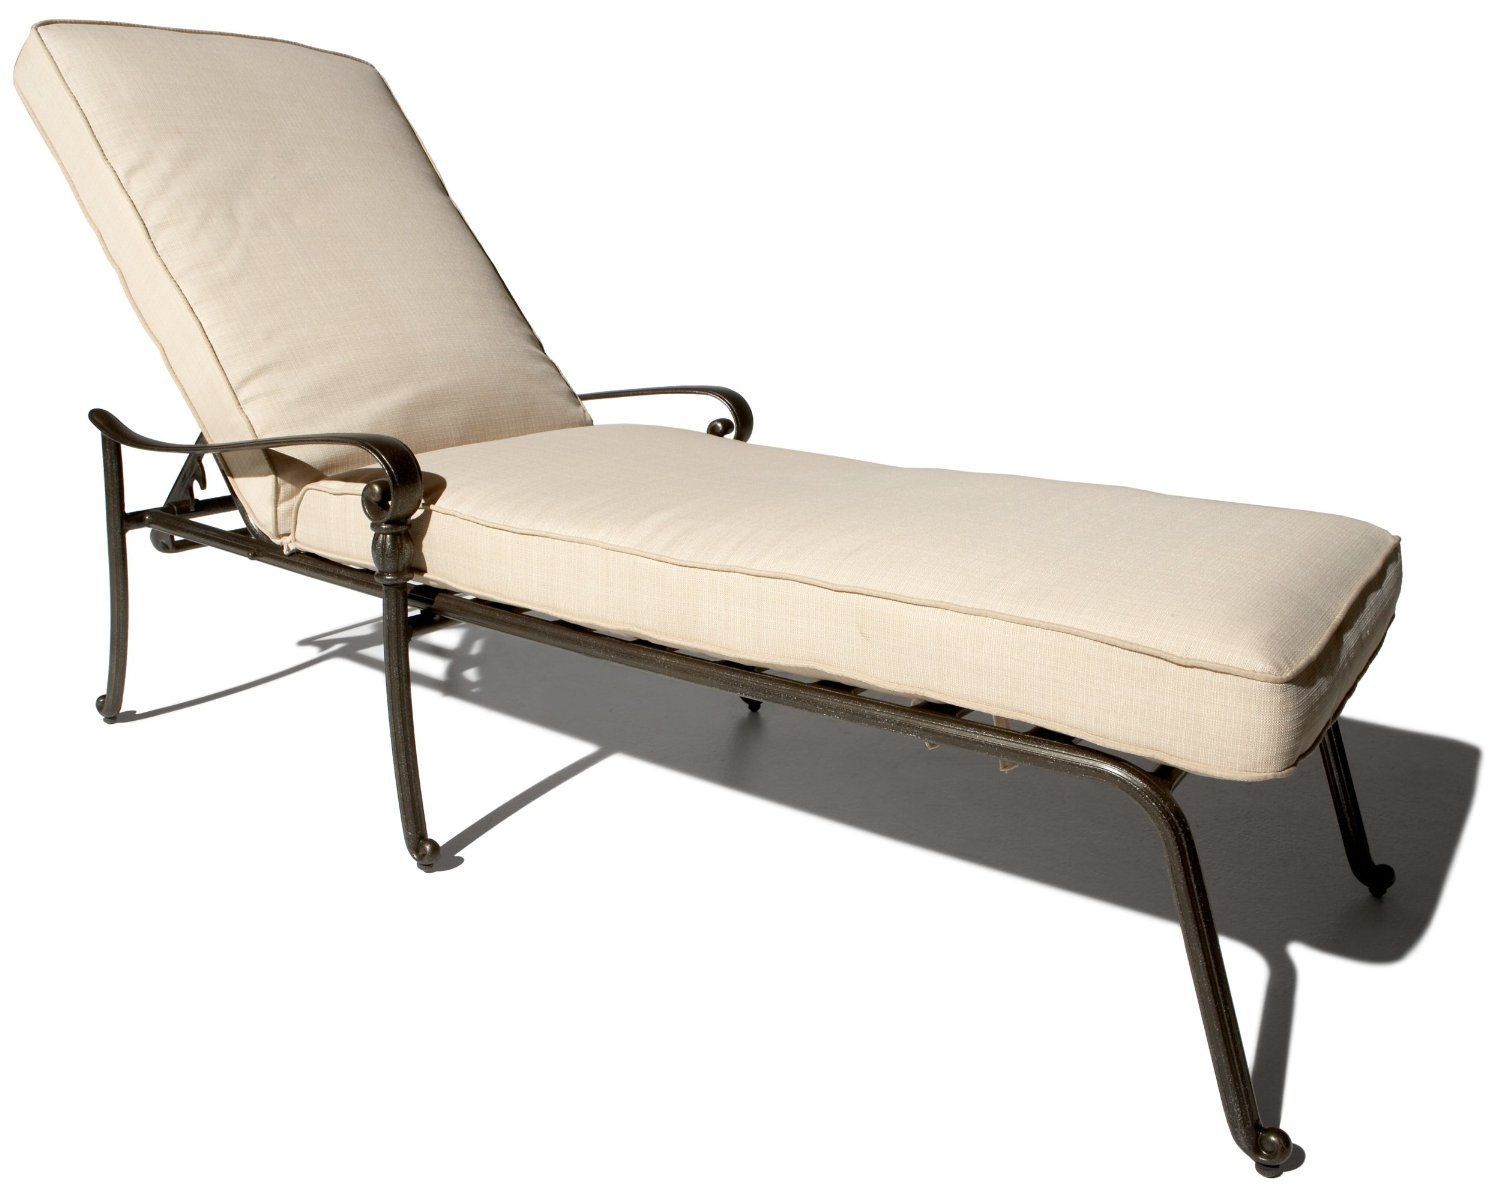 AmazonSmile : Strathwood St. Thomas Cast Aluminum Chaise Lounge Chair : Patio  Lounge Chairs : Patio, Lawn U0026 Garden